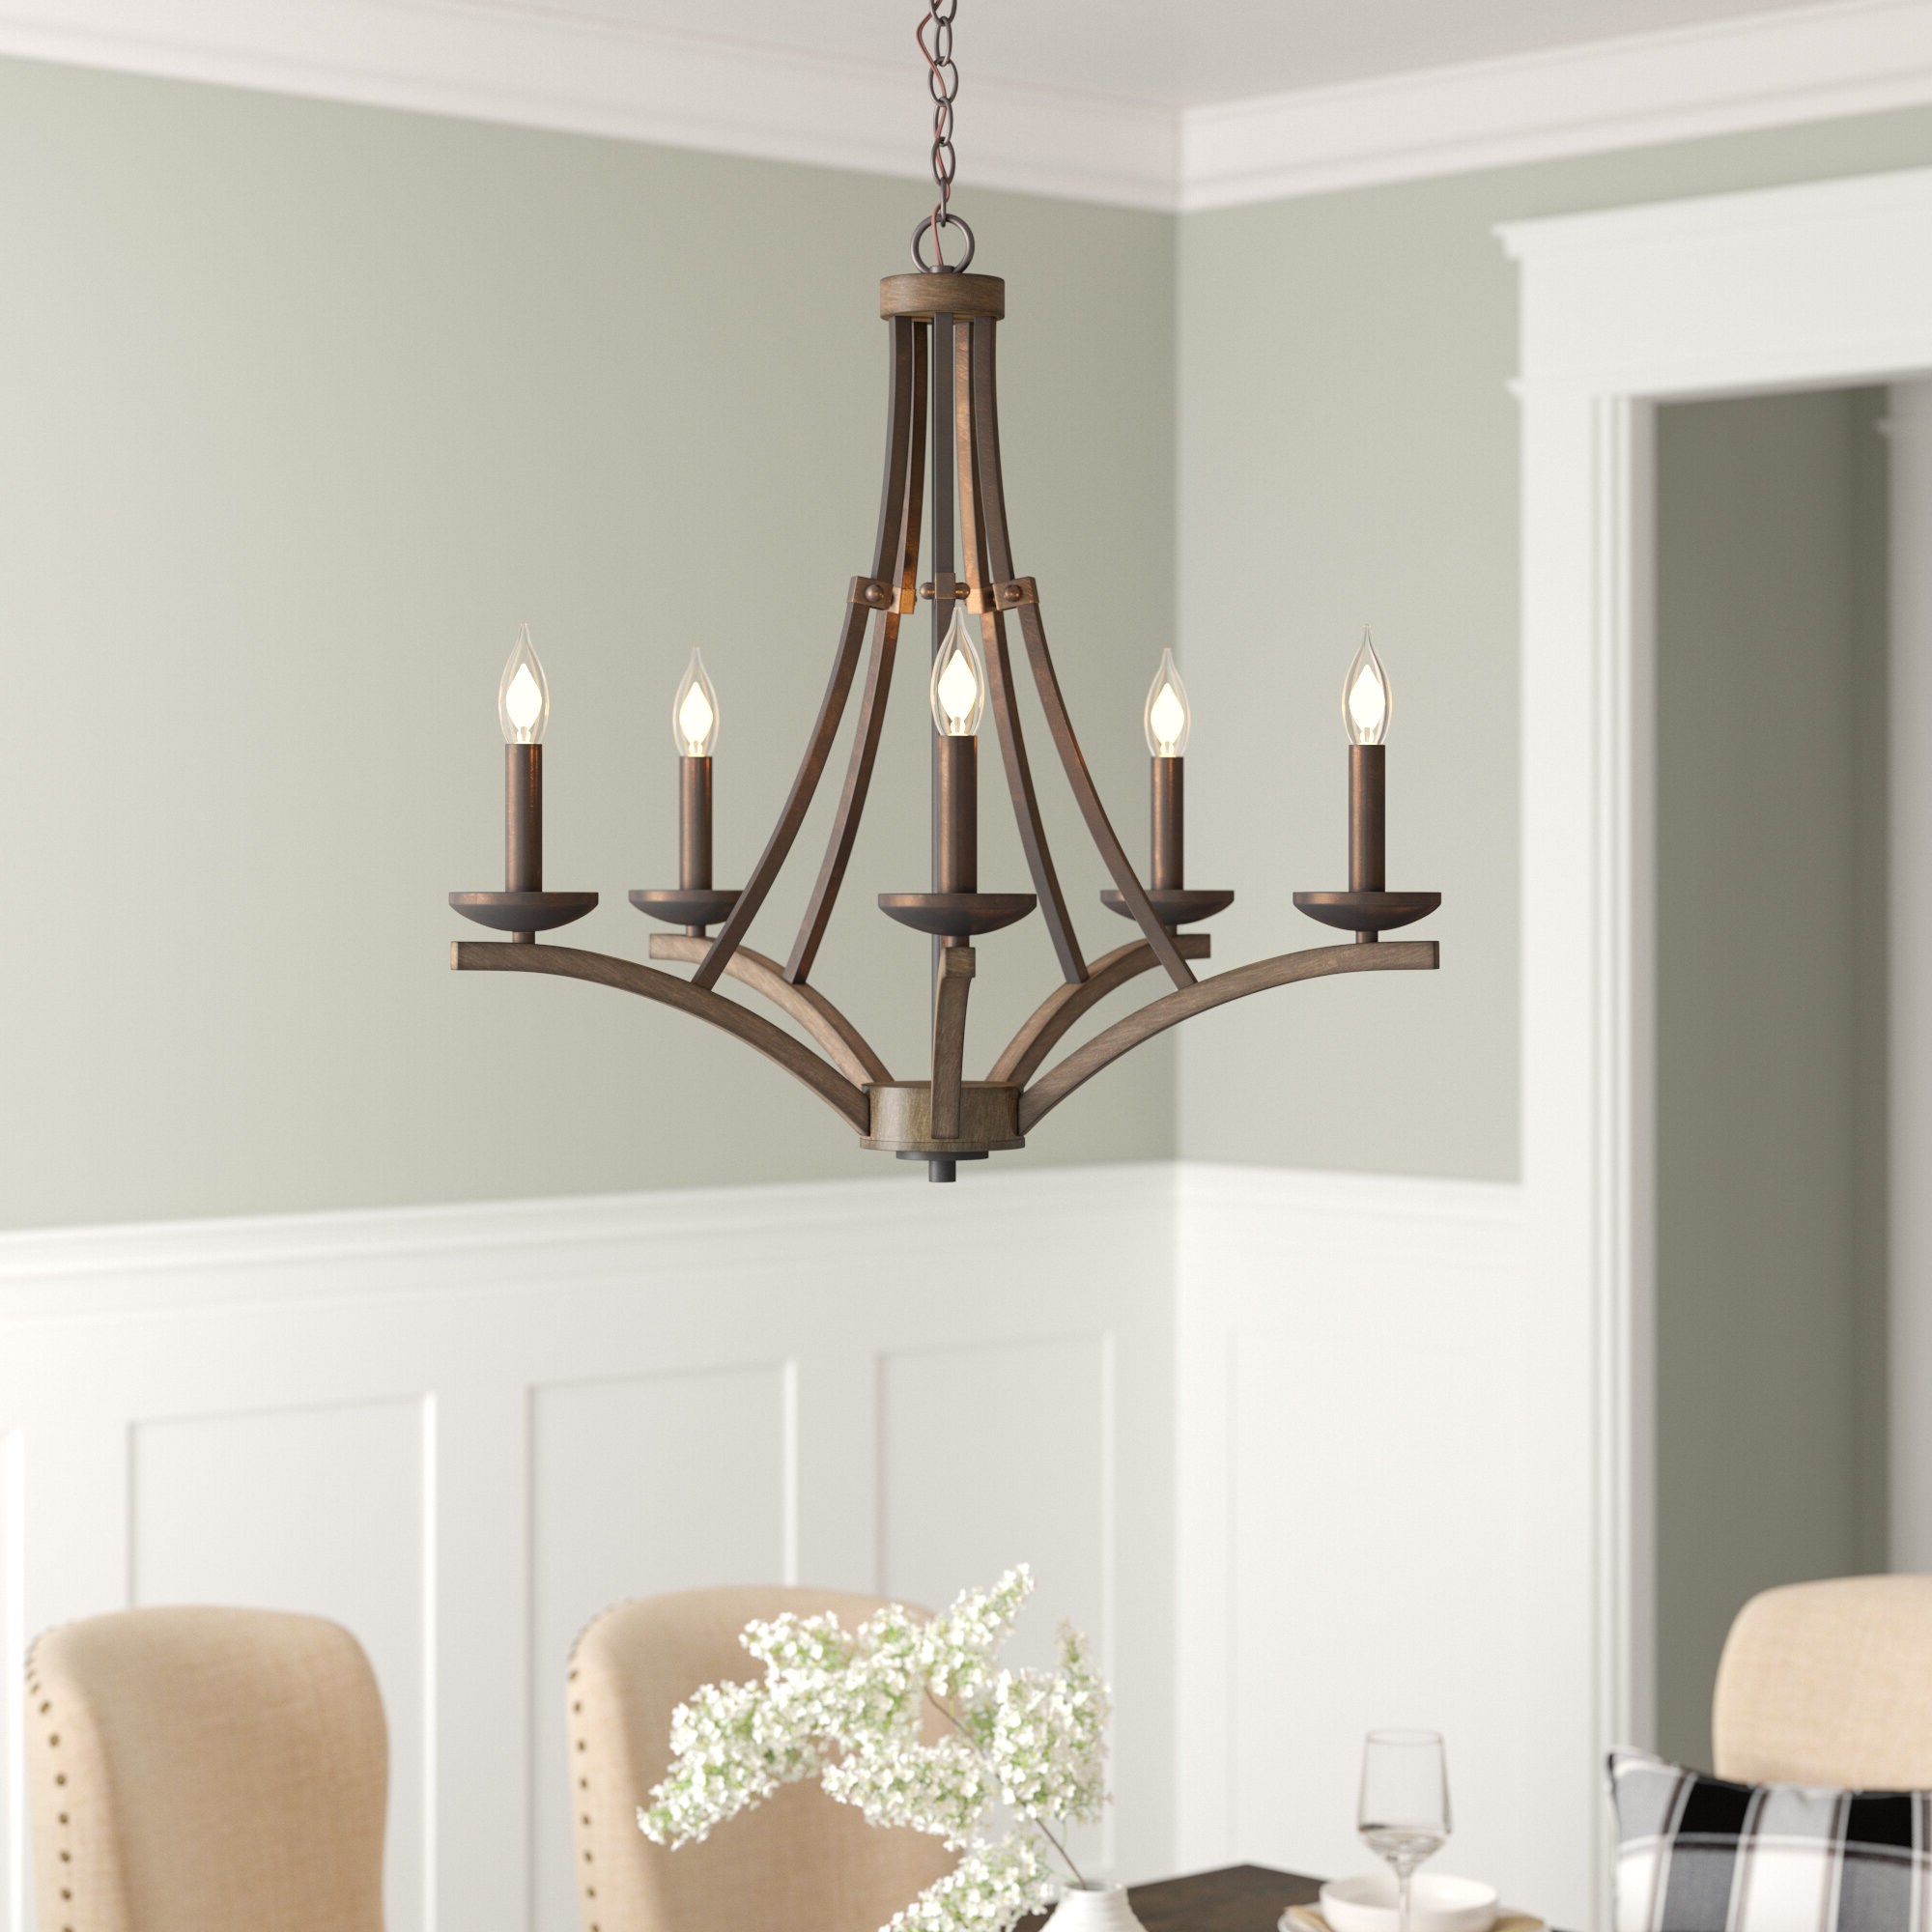 Wireman 5 Light Candle Style Chandelier Throughout 2019 Berger 5 Light Candle Style Chandeliers (View 11 of 20)